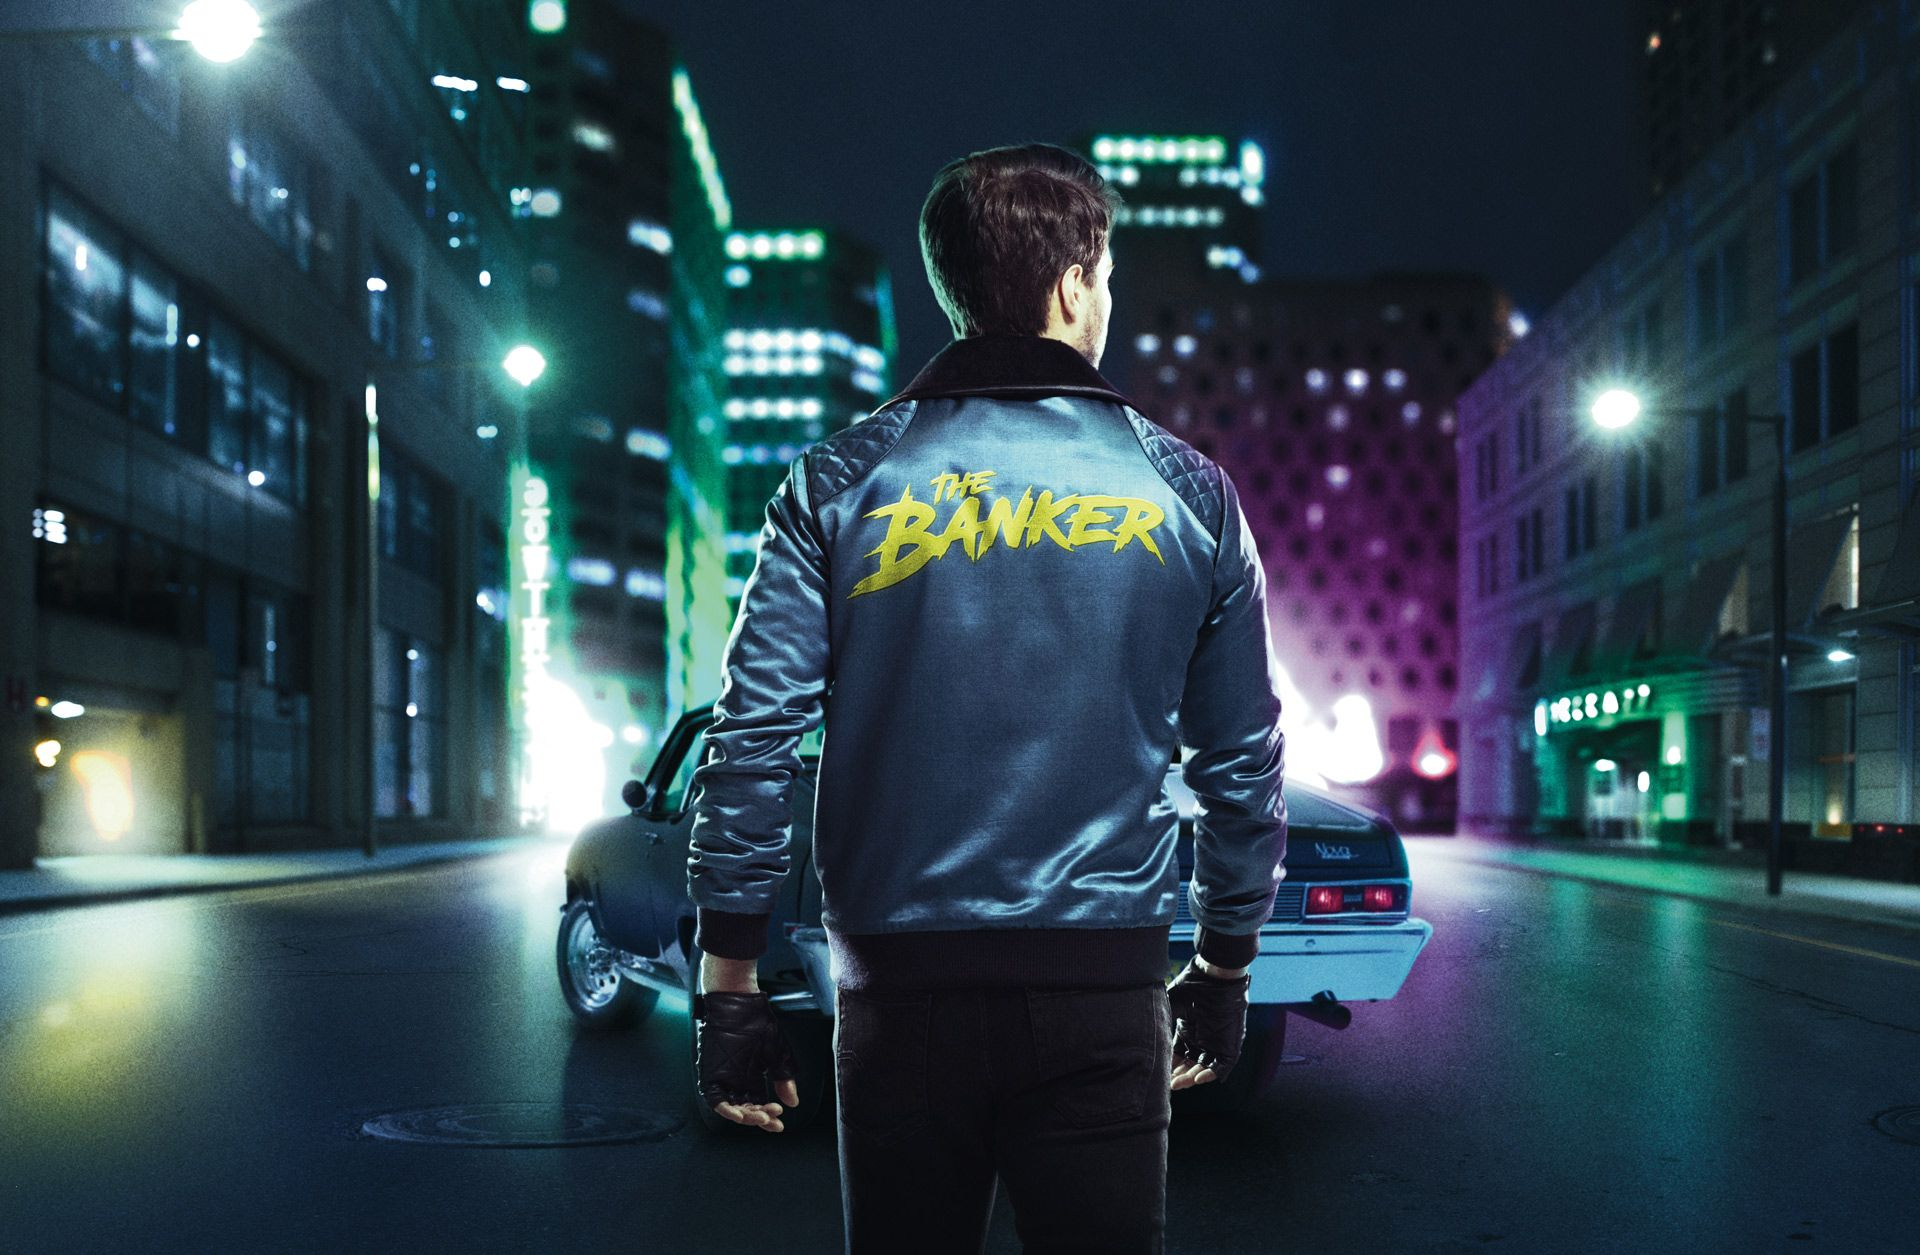 """man from back walking towards car in colored lighting wearing leather jacket with """"The Banker"""" written on the back photographed by Simon Duhamel for bank BNP Paribas"""